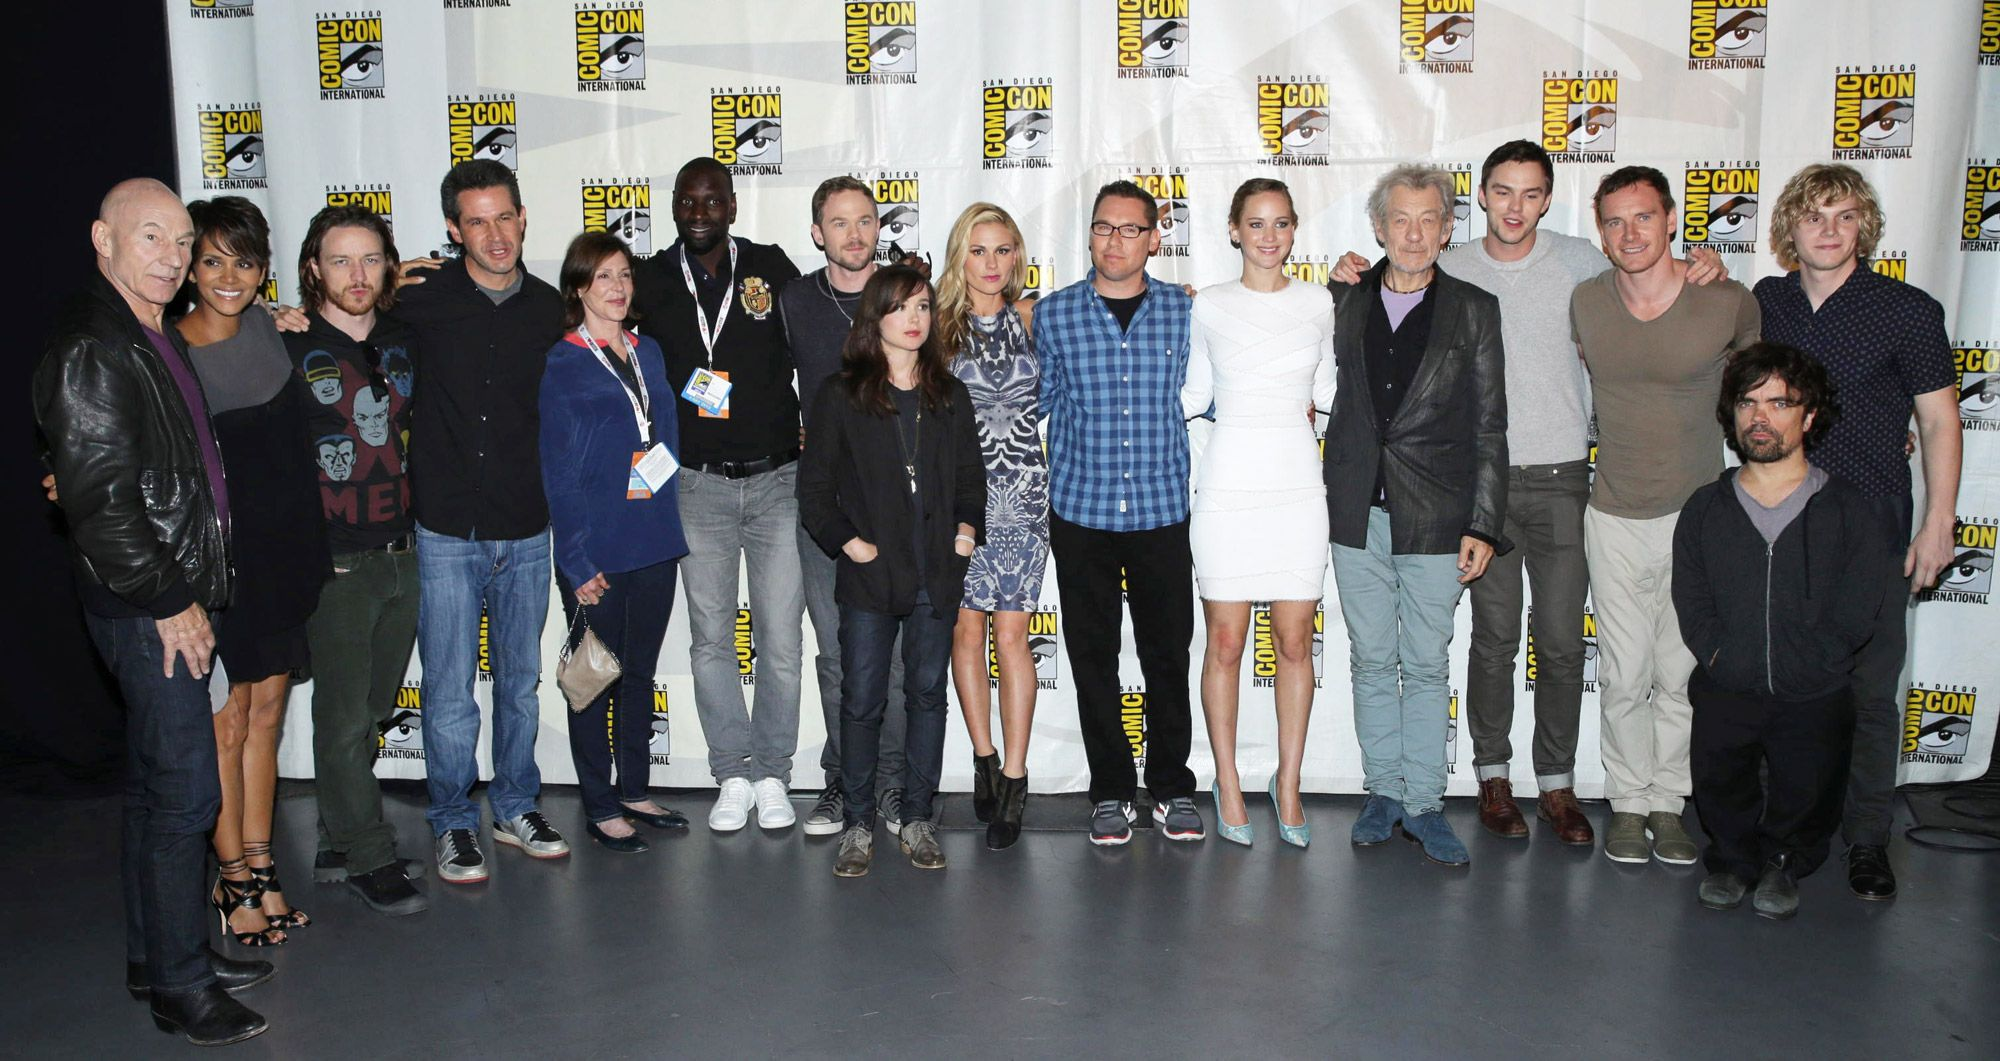 X-Men cast at SDCC 2013. From Left to Right, Patrick Stewart, Halle Berry, James McAvoy, Simon Kinberg, Lauren Shuler Donner, Omar Sy, Shawn Ashmore, Ellen Page, Anna Paquin, Bryan Singer, Jennifer Lawrence, Ian McKellen, Nicholas Hoult, Michael Fassbender, Peter Dinklage and Evan Peters.